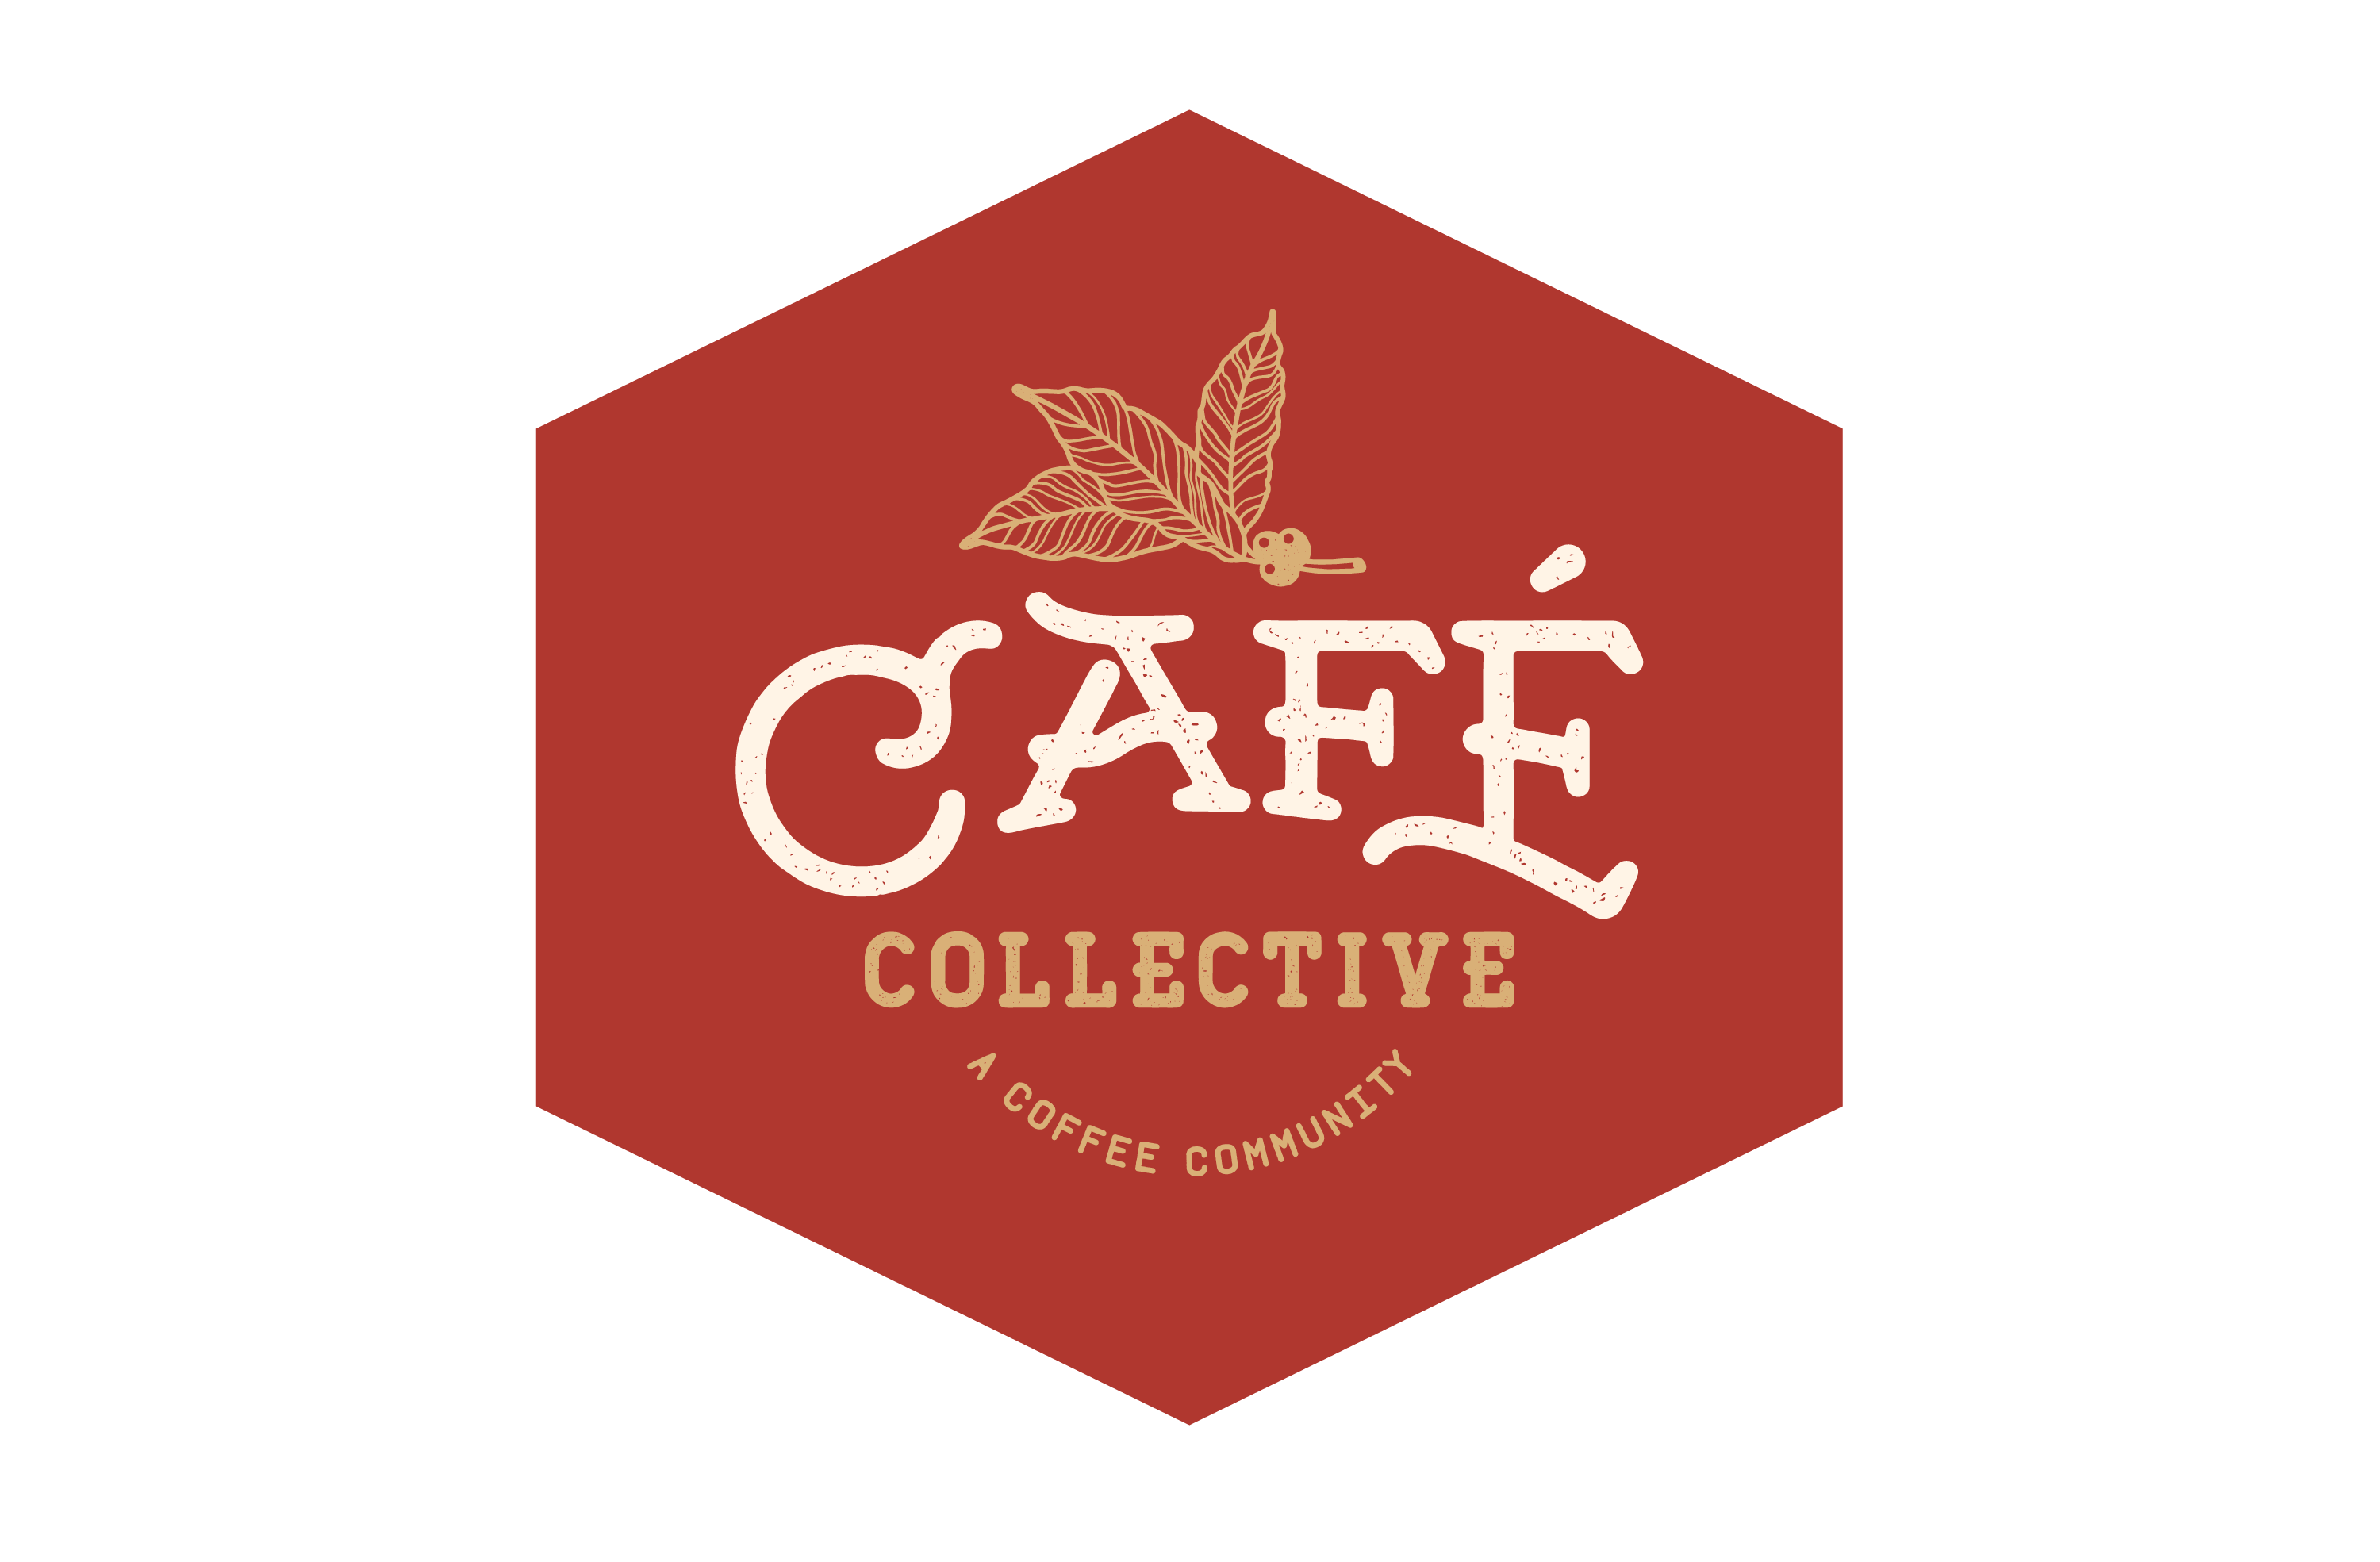 Cafe Collective hosts Ft Lauderdale Bloggers